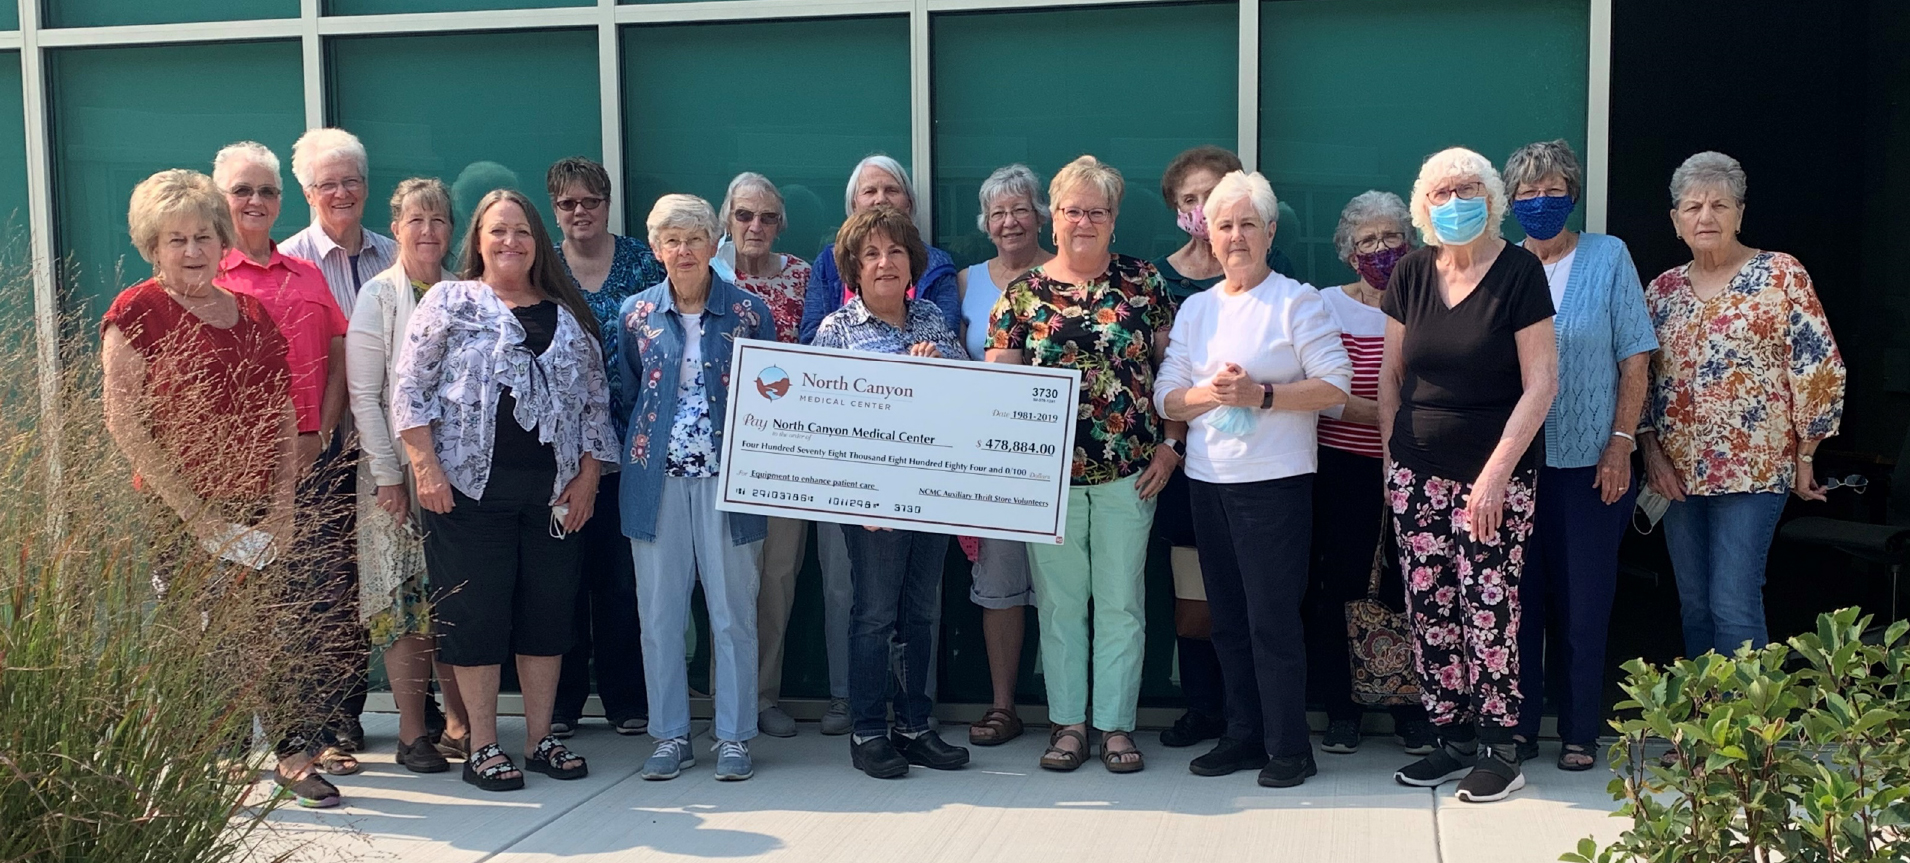 Auxiliary members with donation check